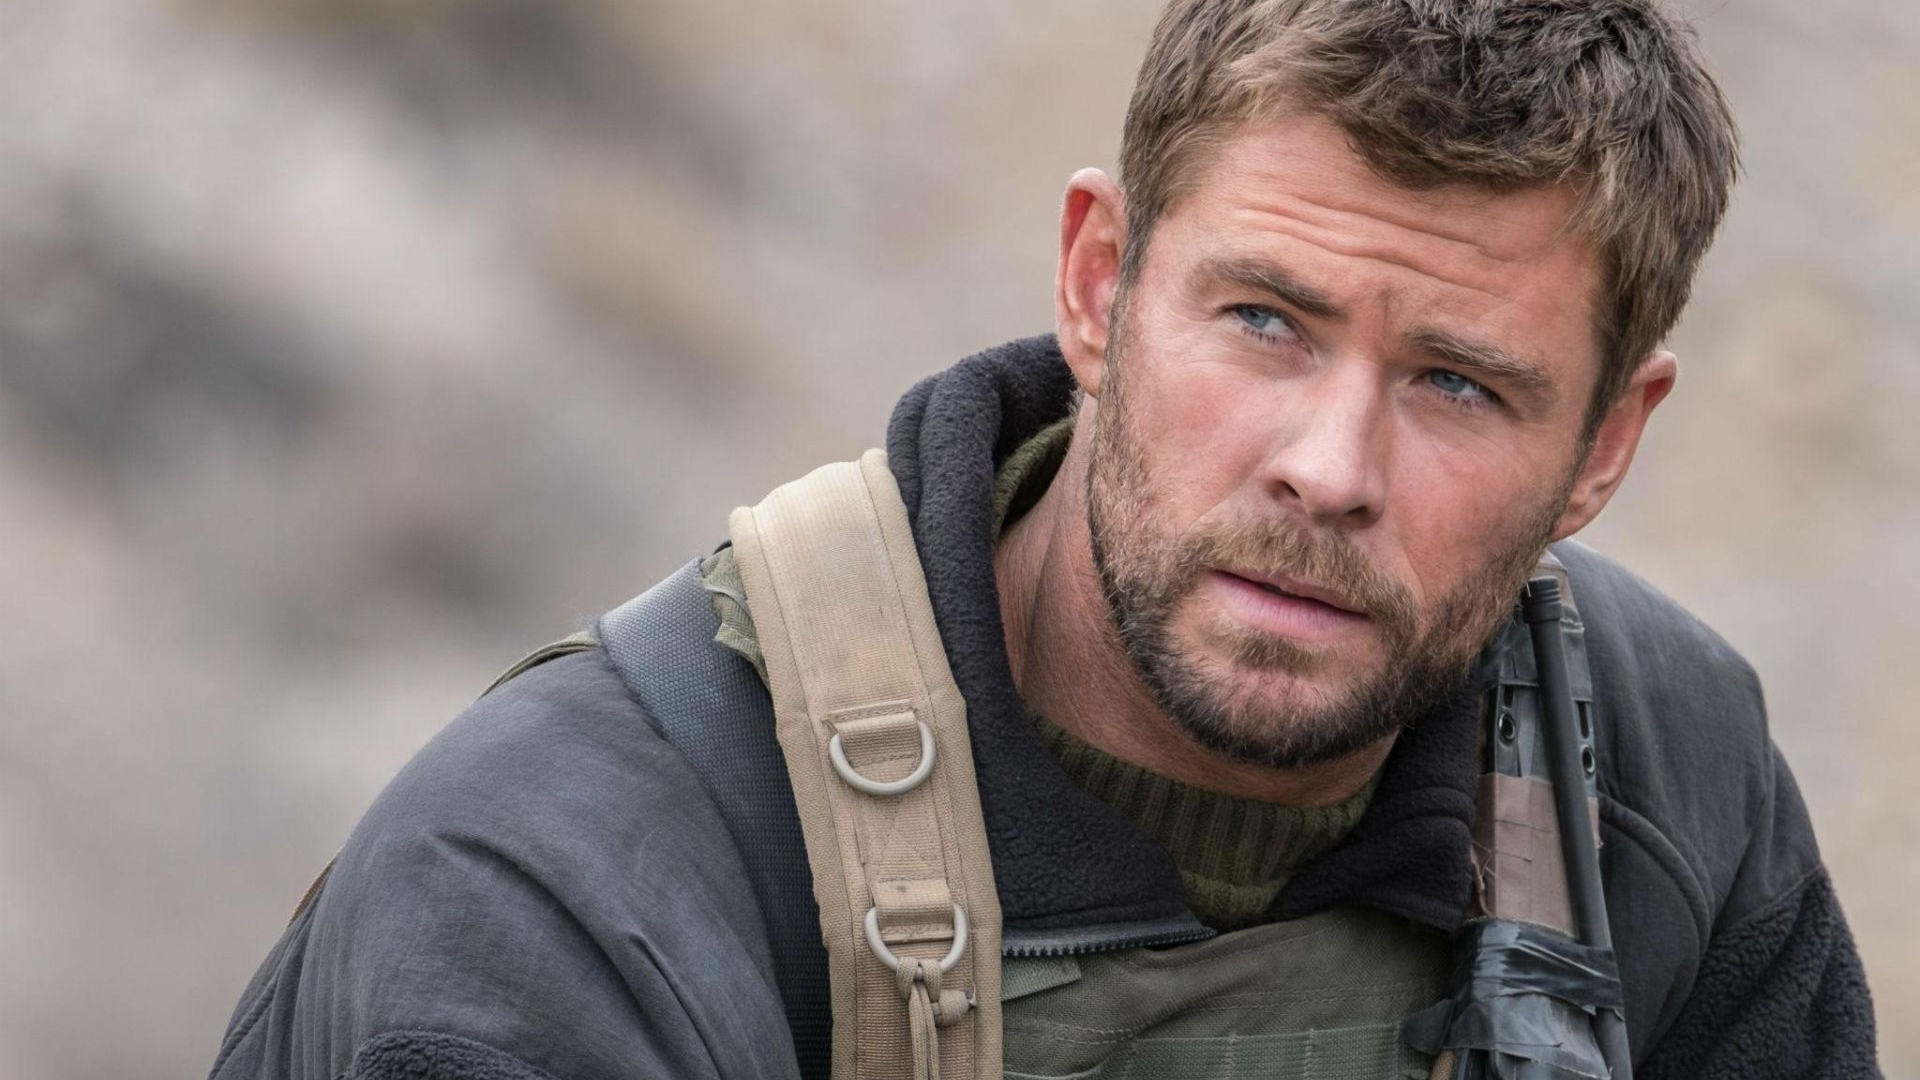 Captain America s Stunt Double Will Direct Chris Hemsworth in a Netflix  Action Film Called DHAKA — GeekTyrant ea7a7a460de6a